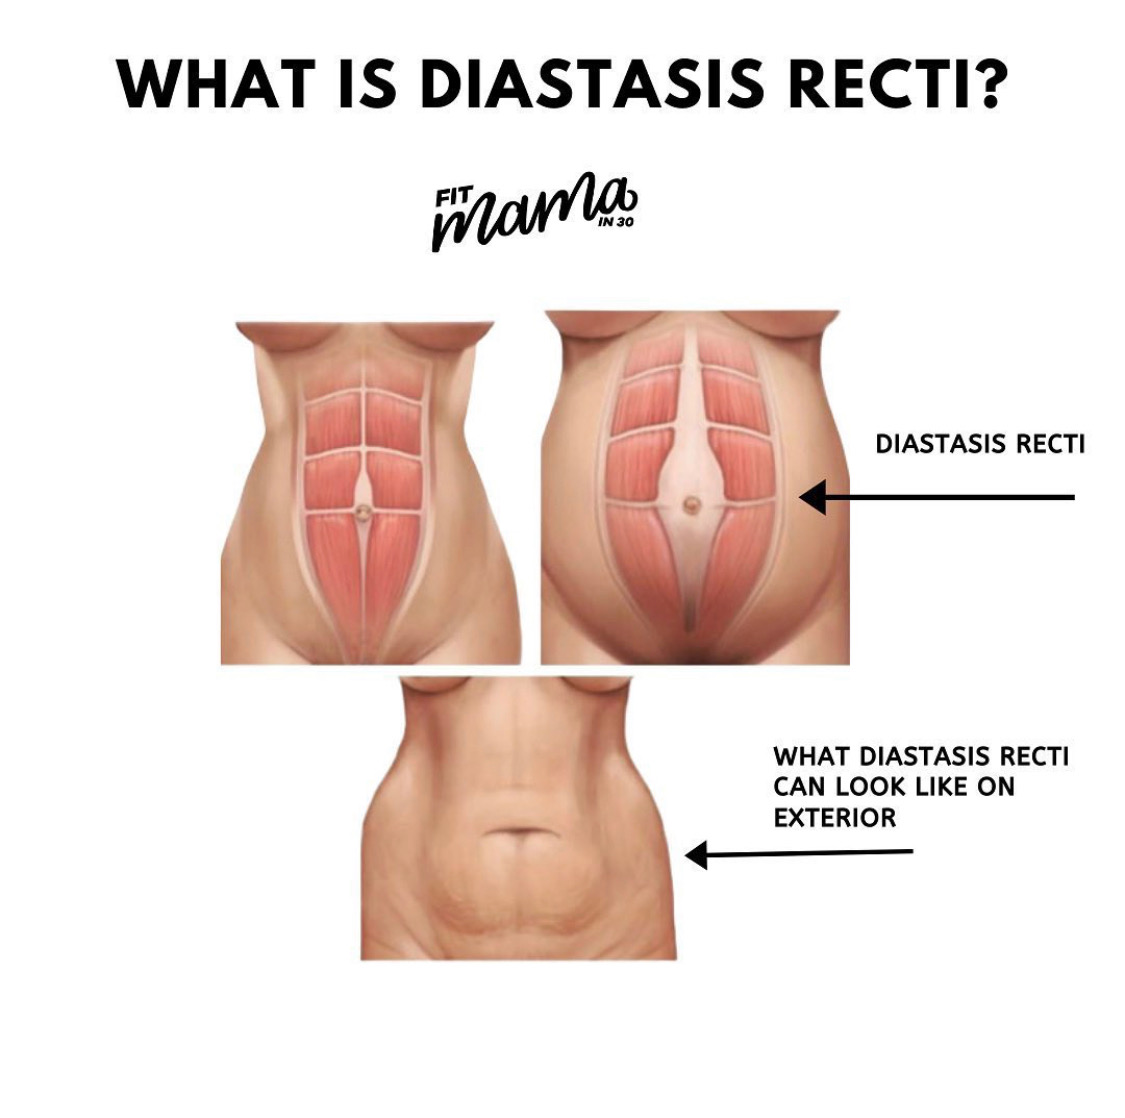 Diastasis Recti & How to Recover From It